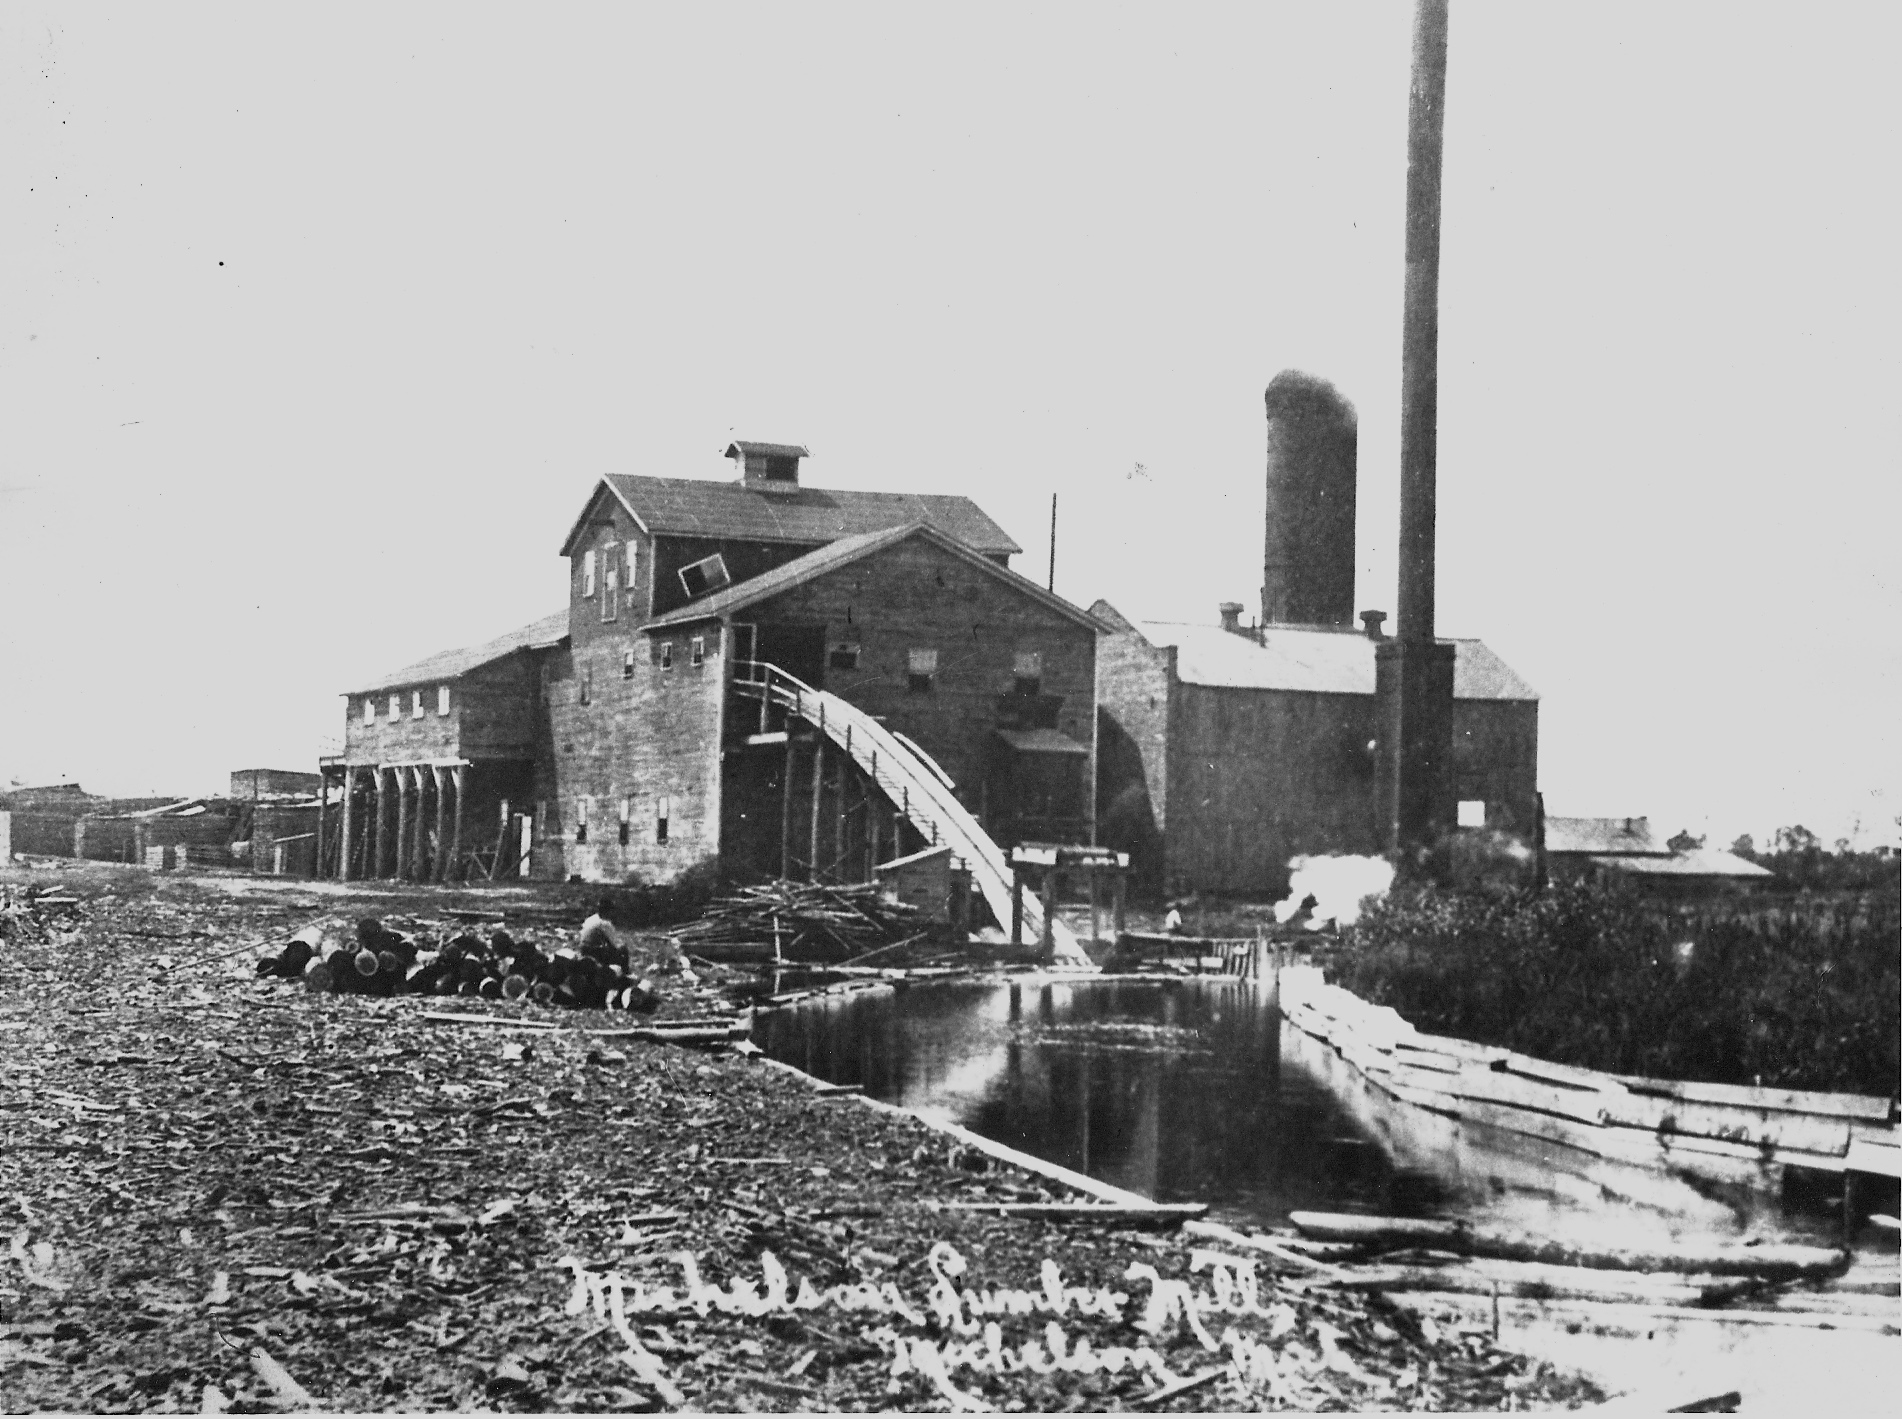 Michelson Lumber Mill